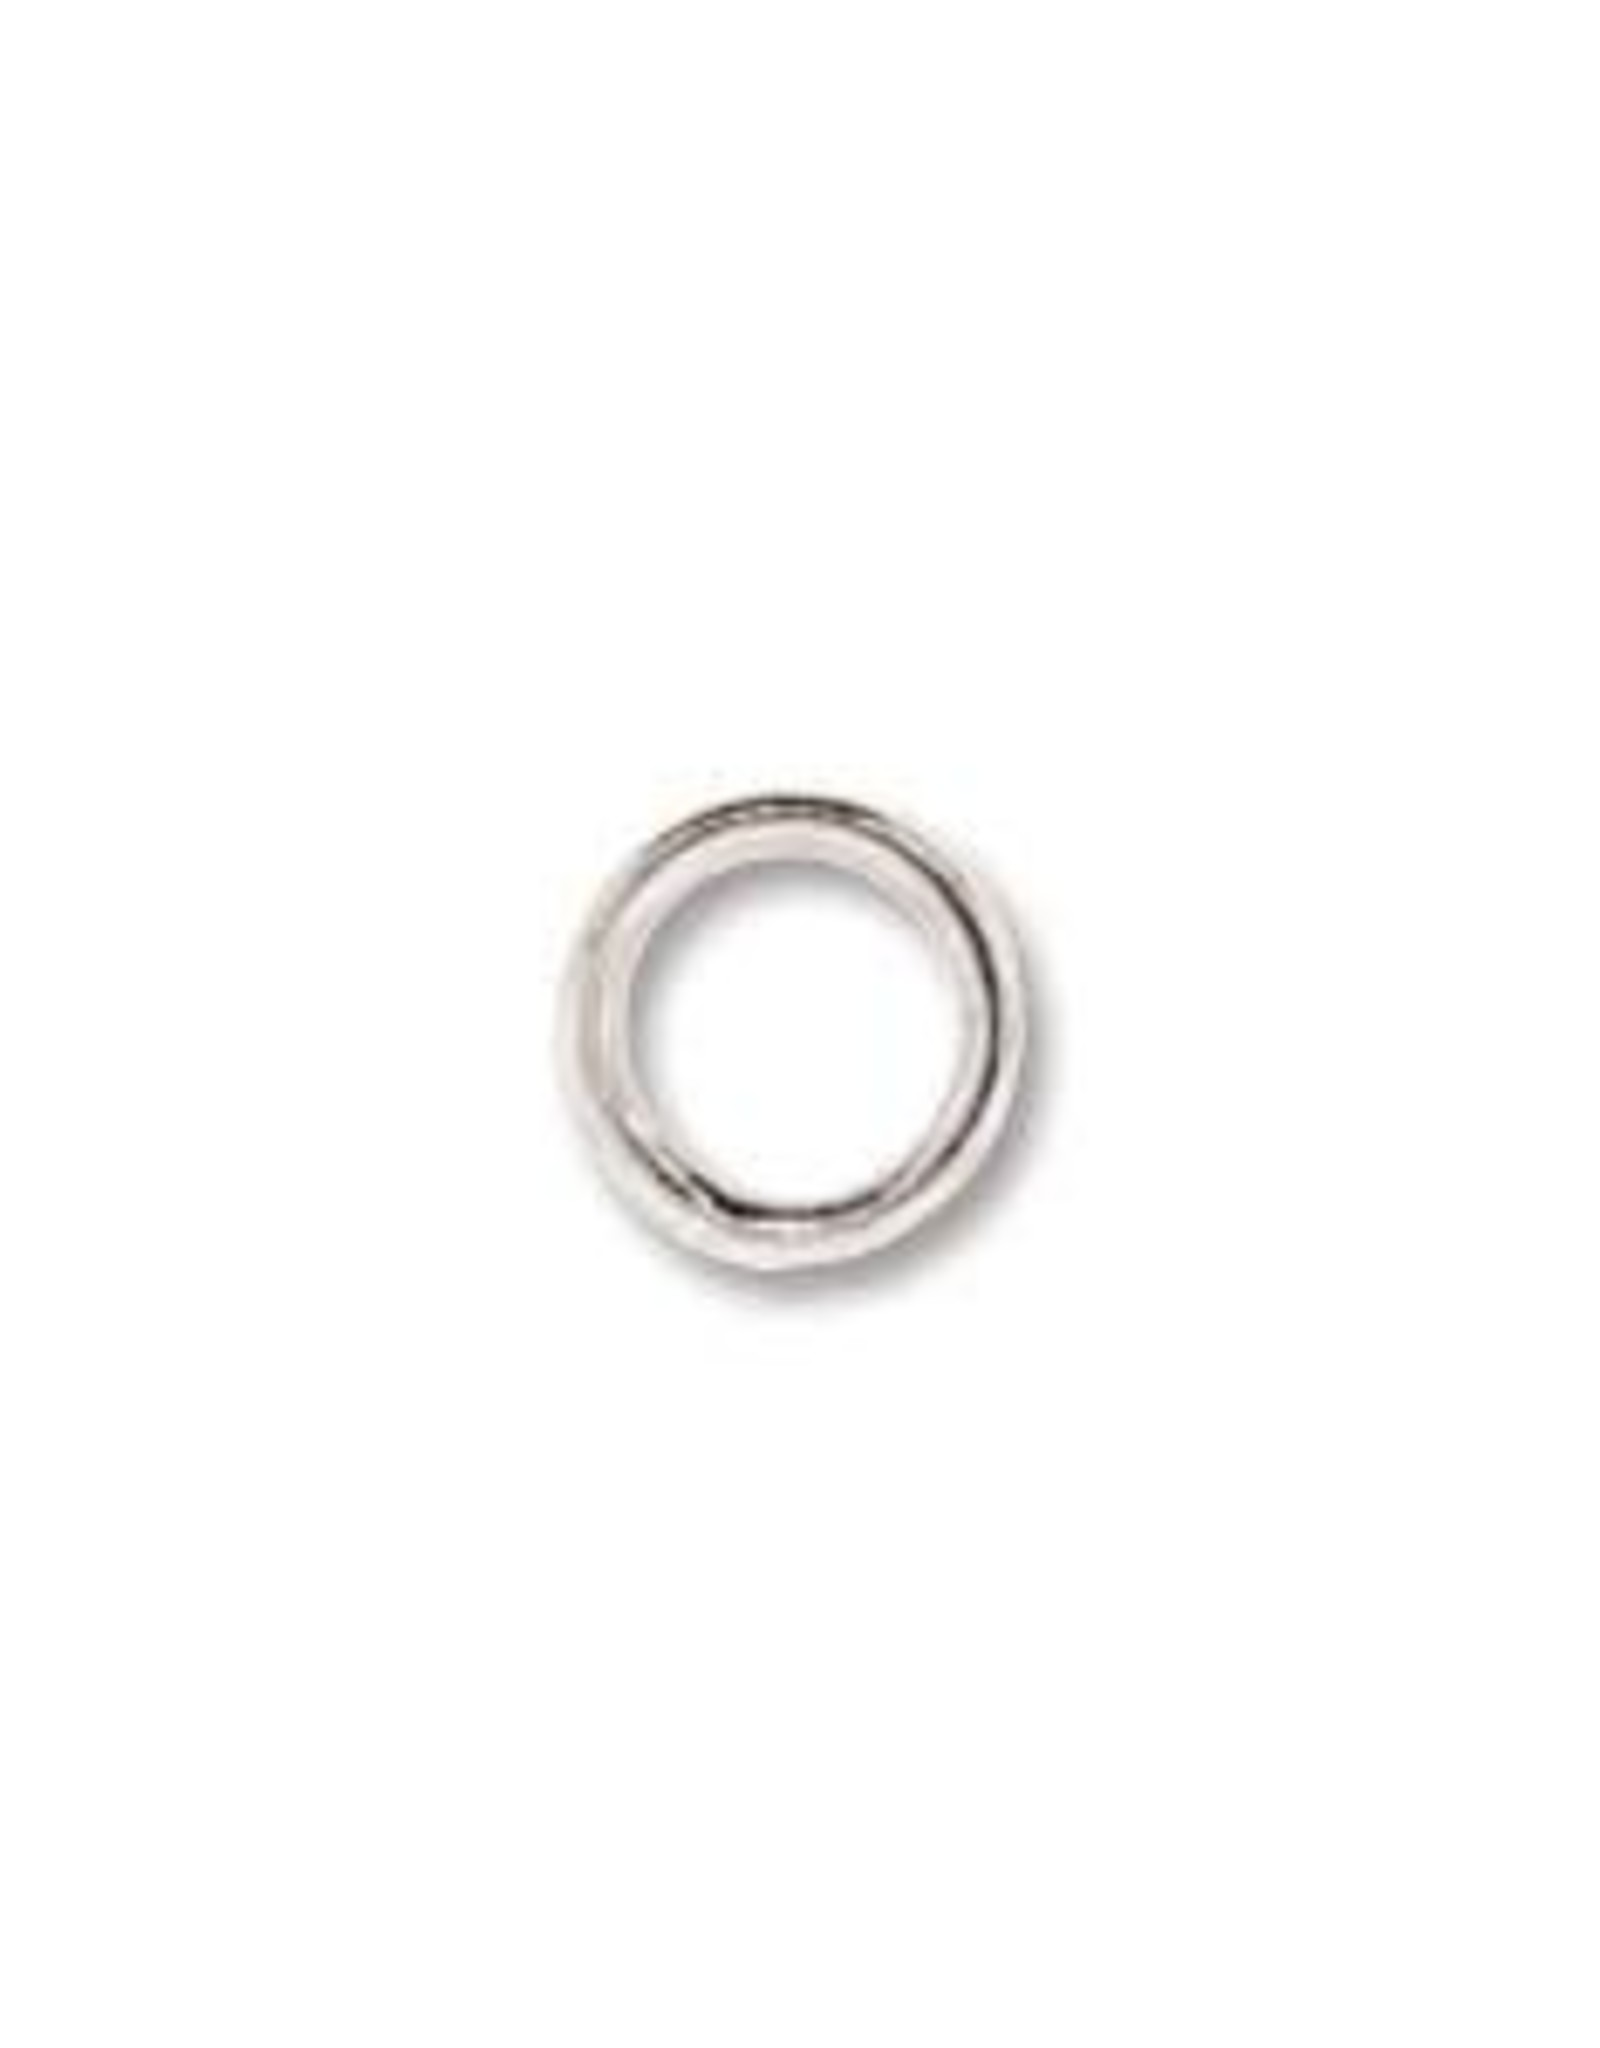 6mm Closed Rings, 19ga, Silver Plate Qty 12